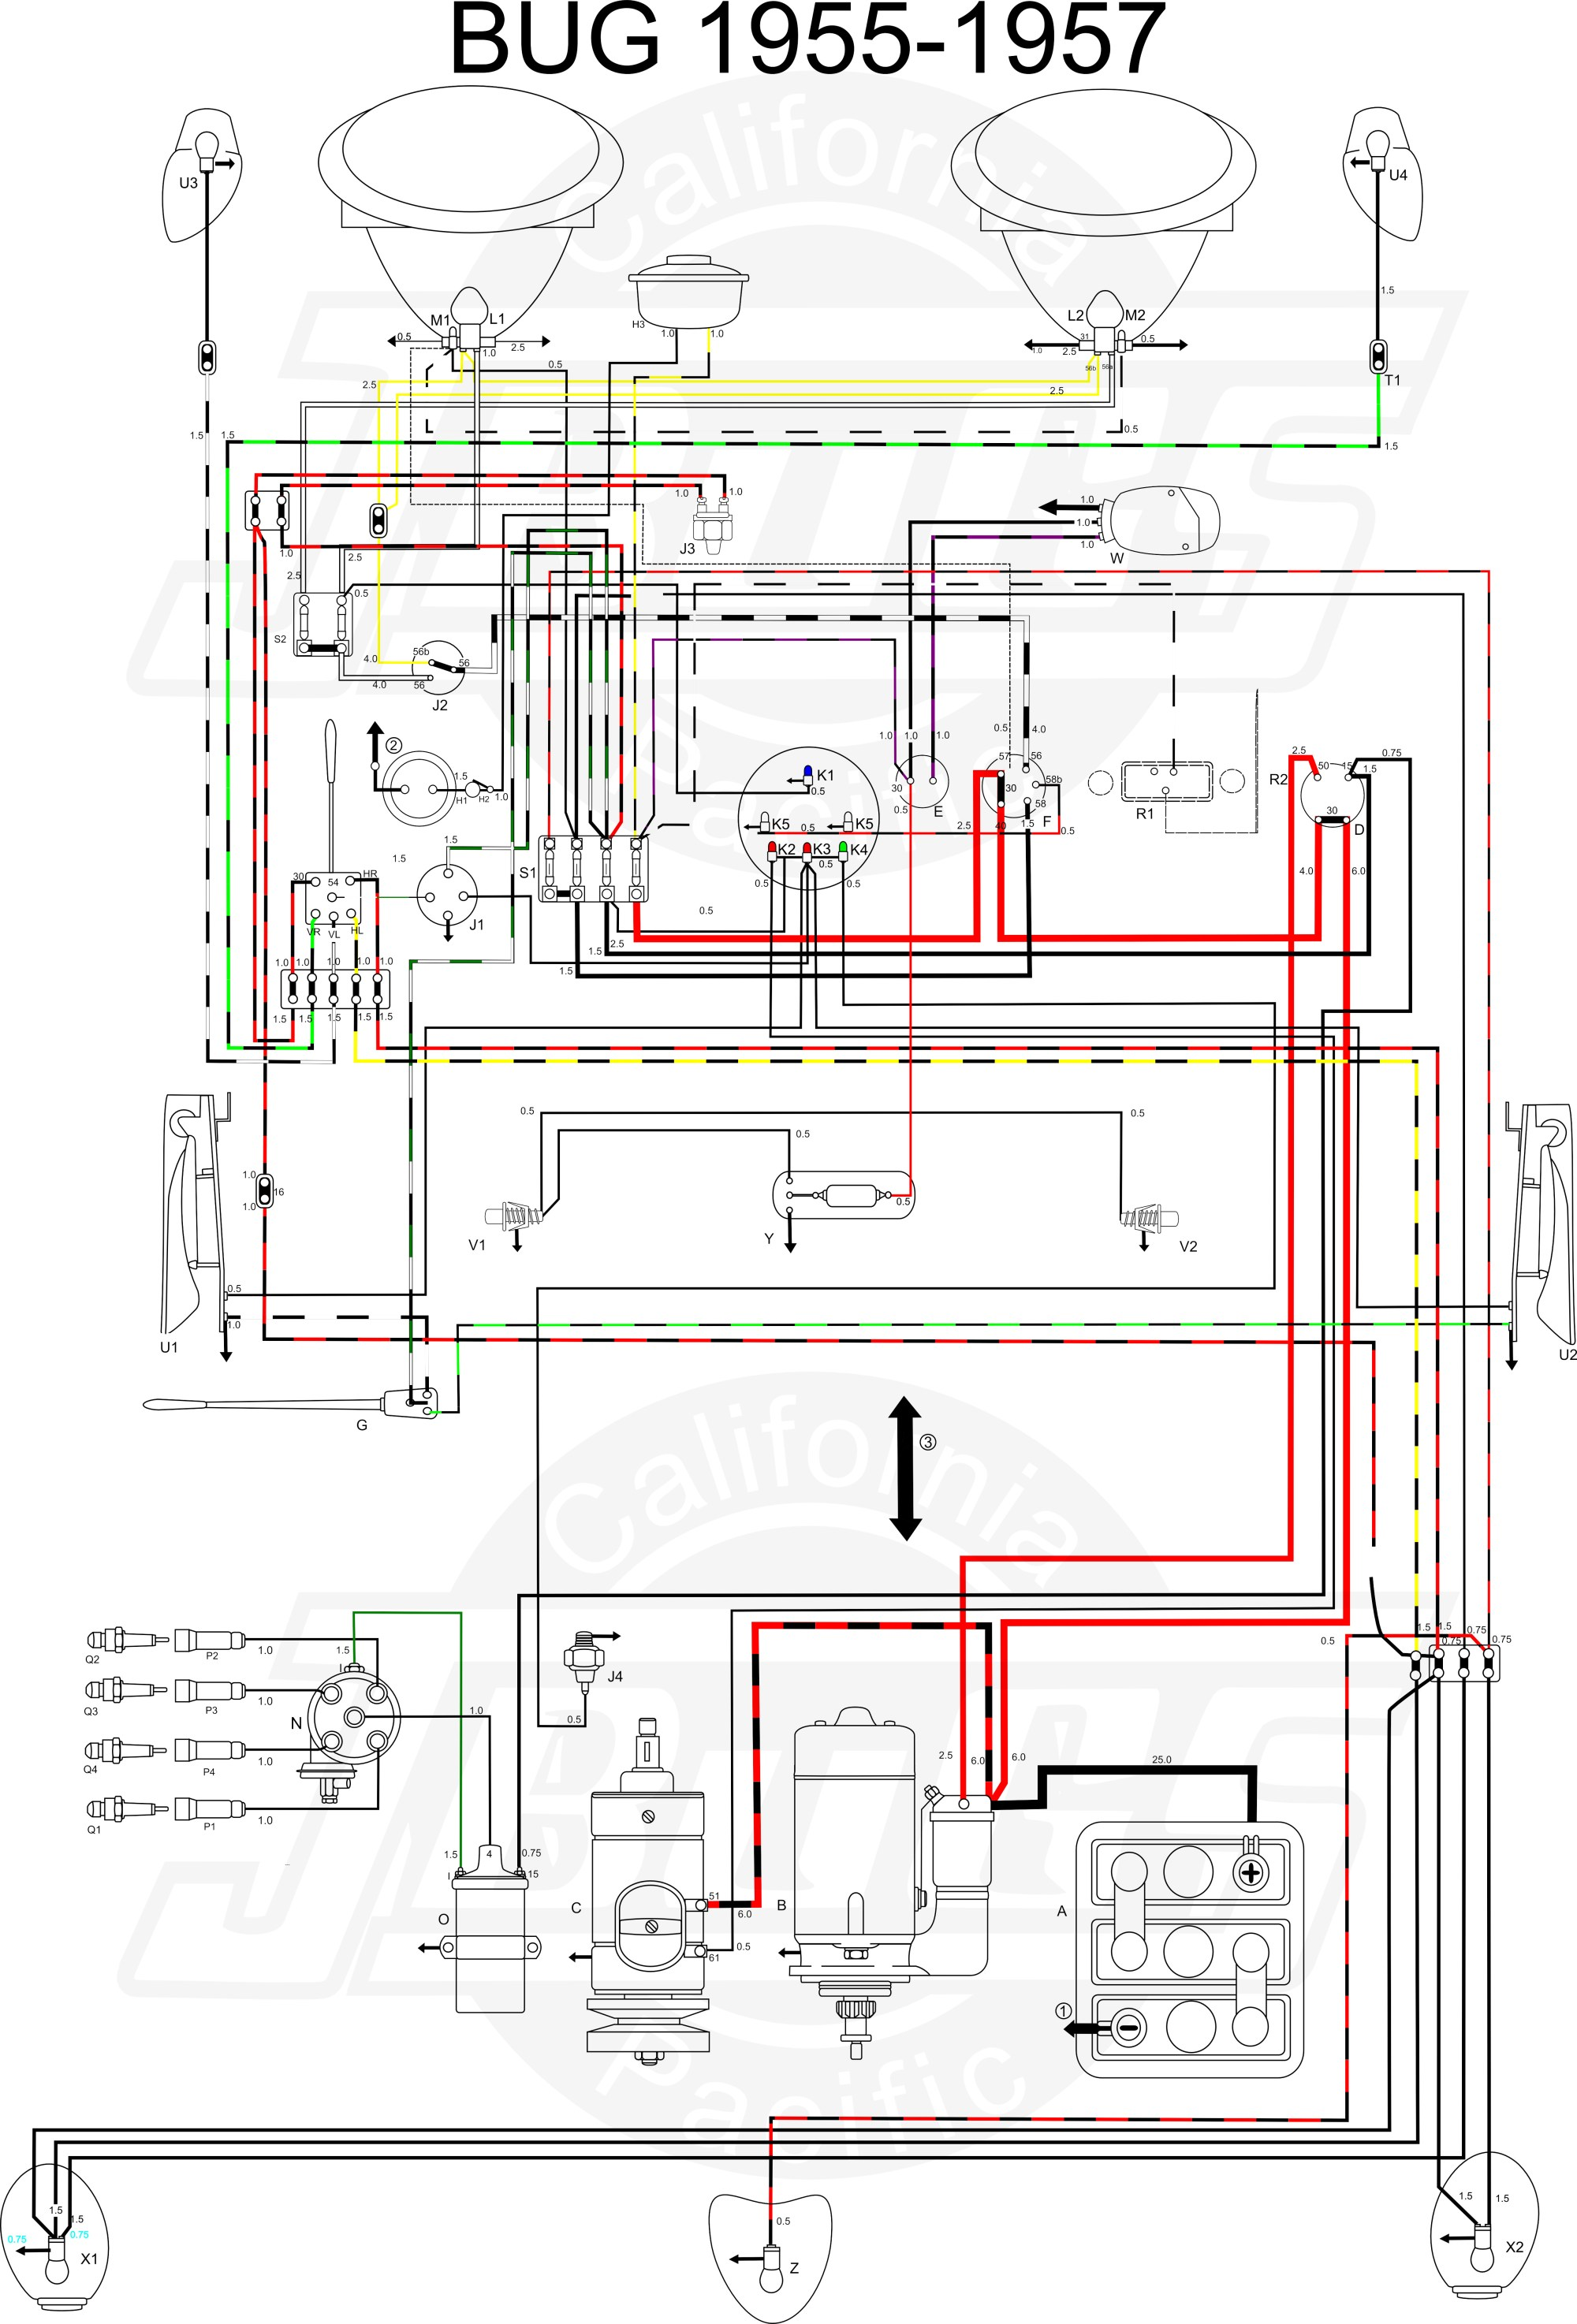 hight resolution of 75 vw beetle fuel gauge wiring diagram wiring diagram showair cooled vw fuel gauge wiring diagram